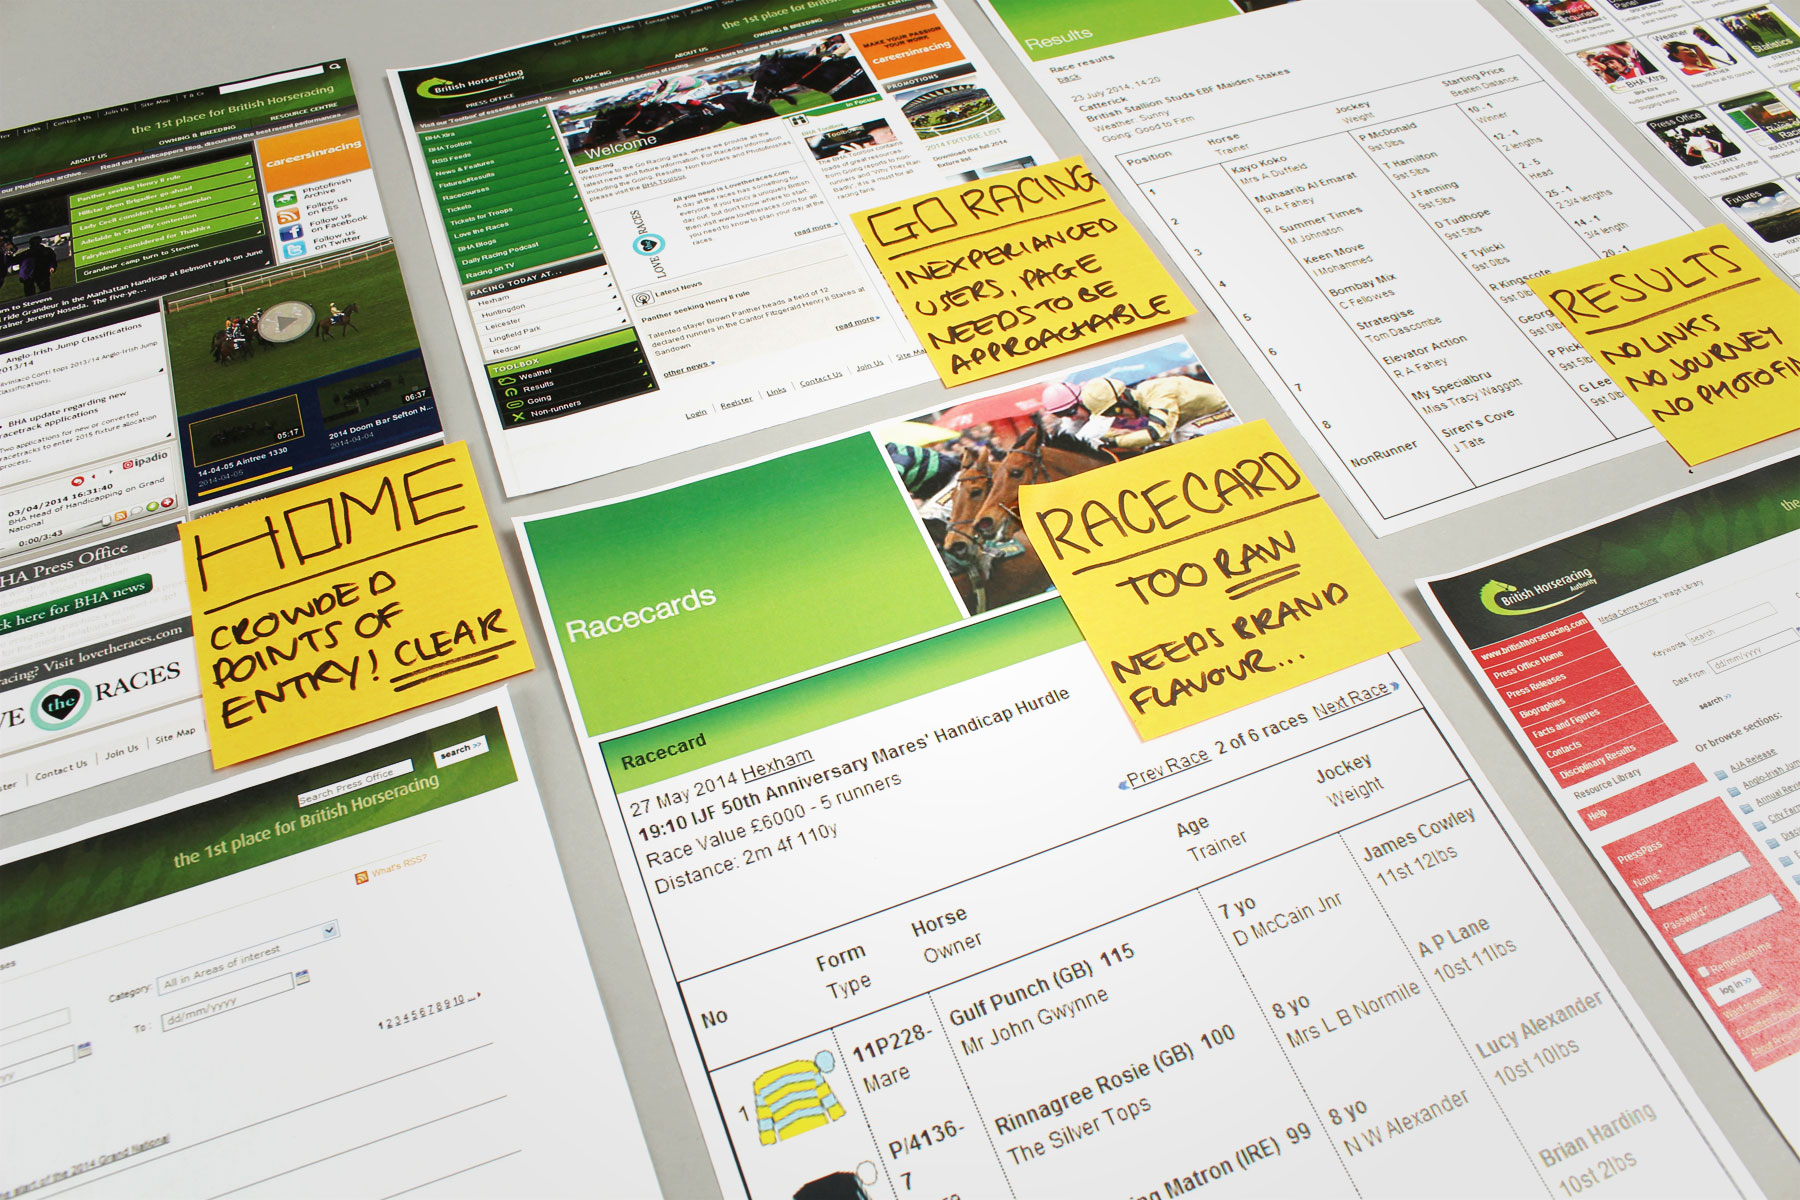 An initial audit was carried out across the BHA website. This included UI/UX, navigation and aesthetics.